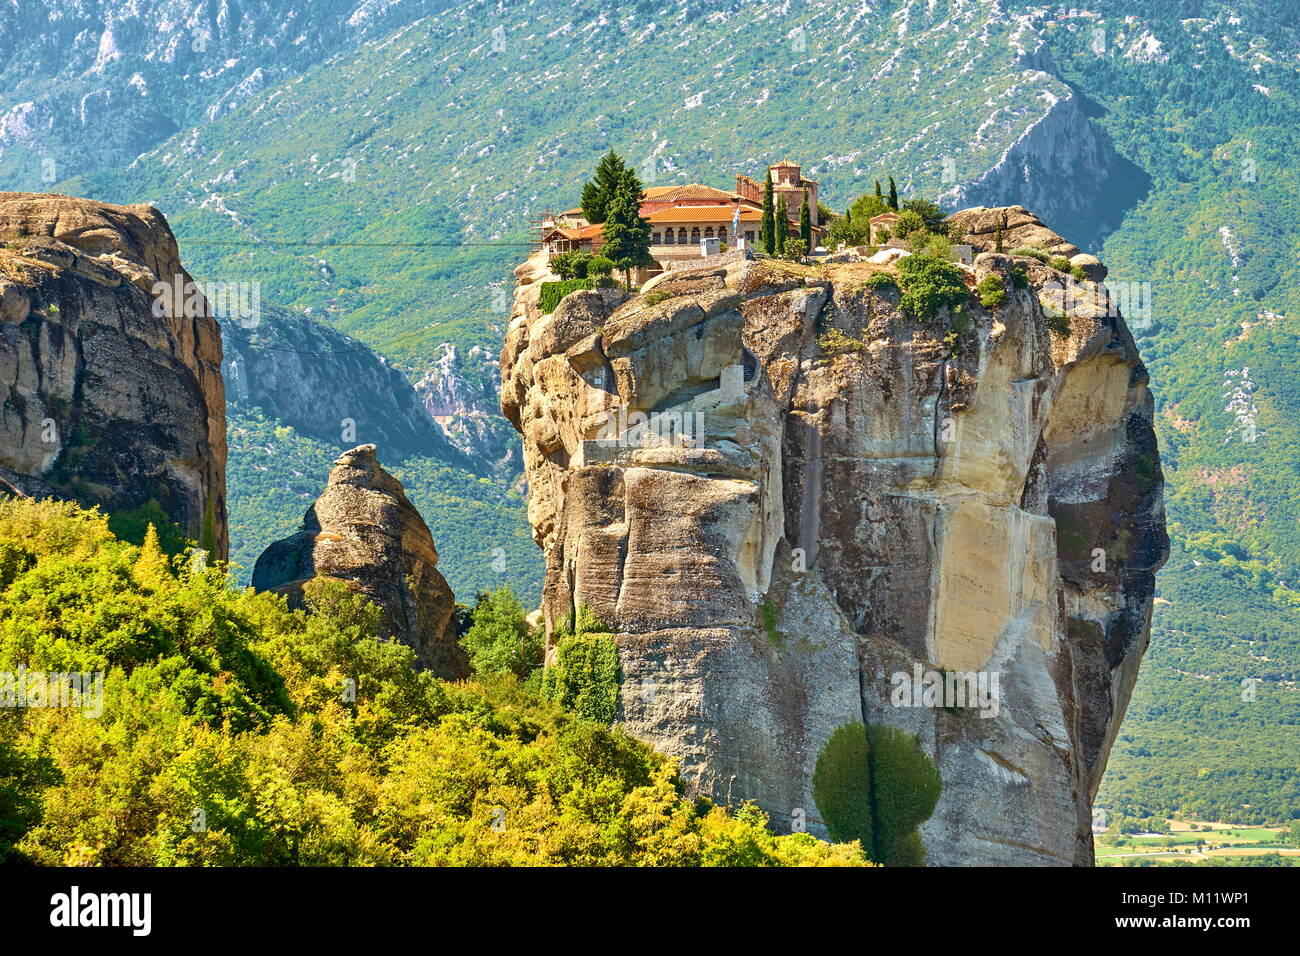 Monastery of the Holy Trinity, Meteora, Greece - Stock Image